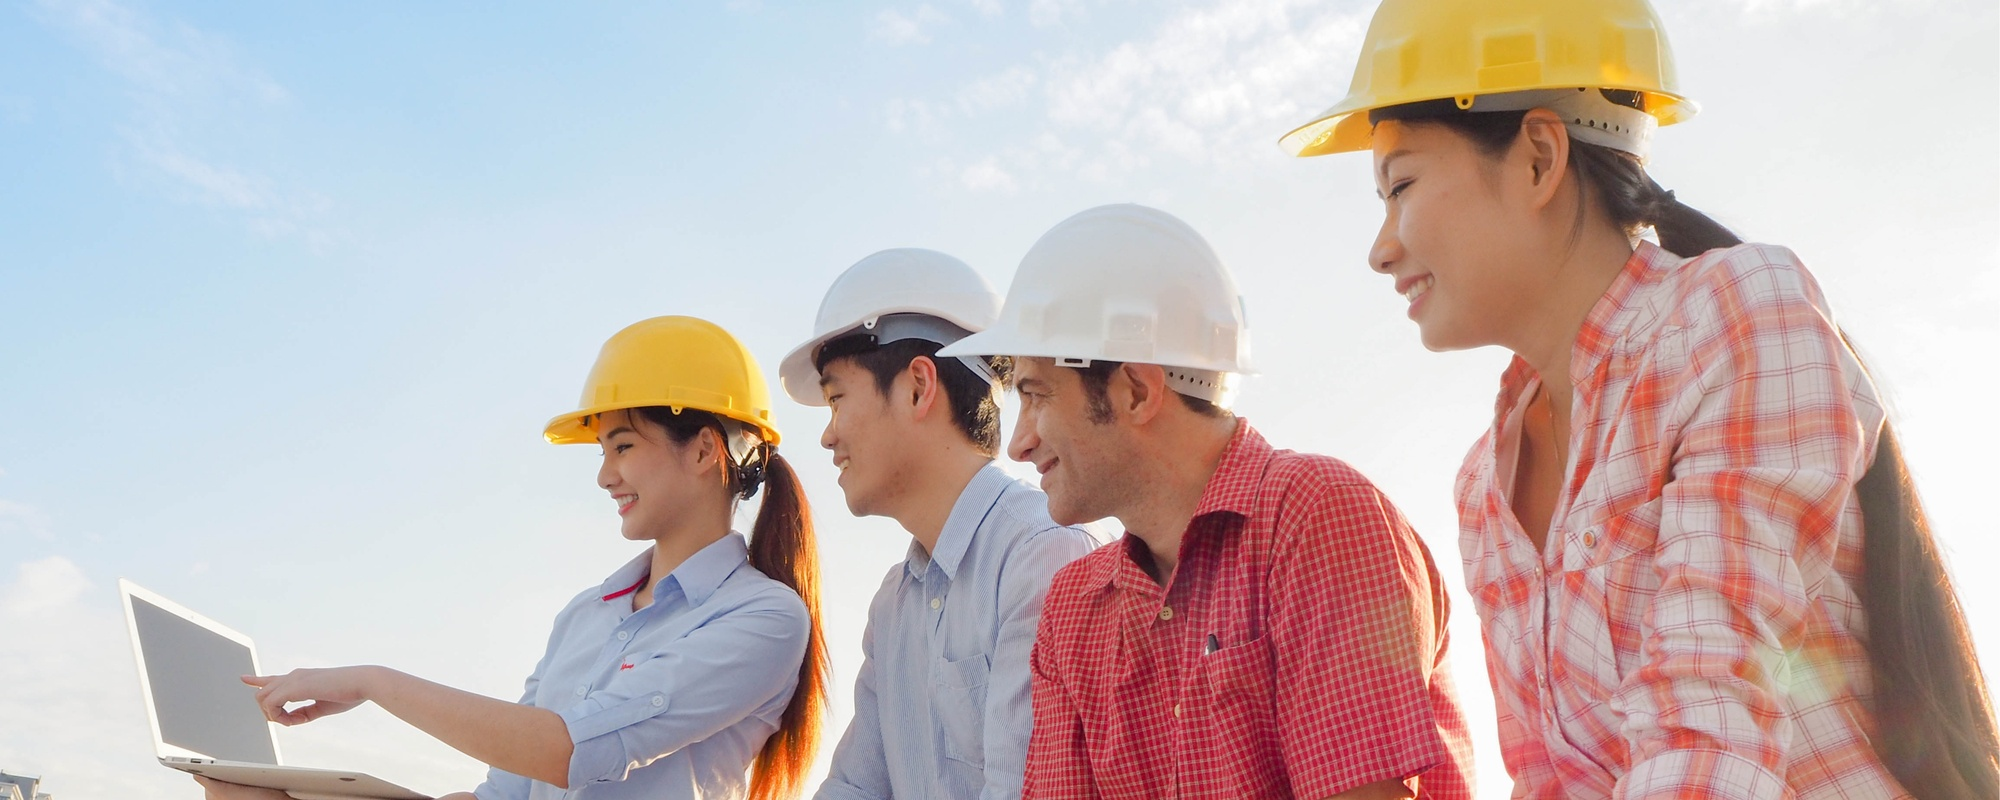 Ask to See Contractors Insurance Before Getting Work Done on Your Home